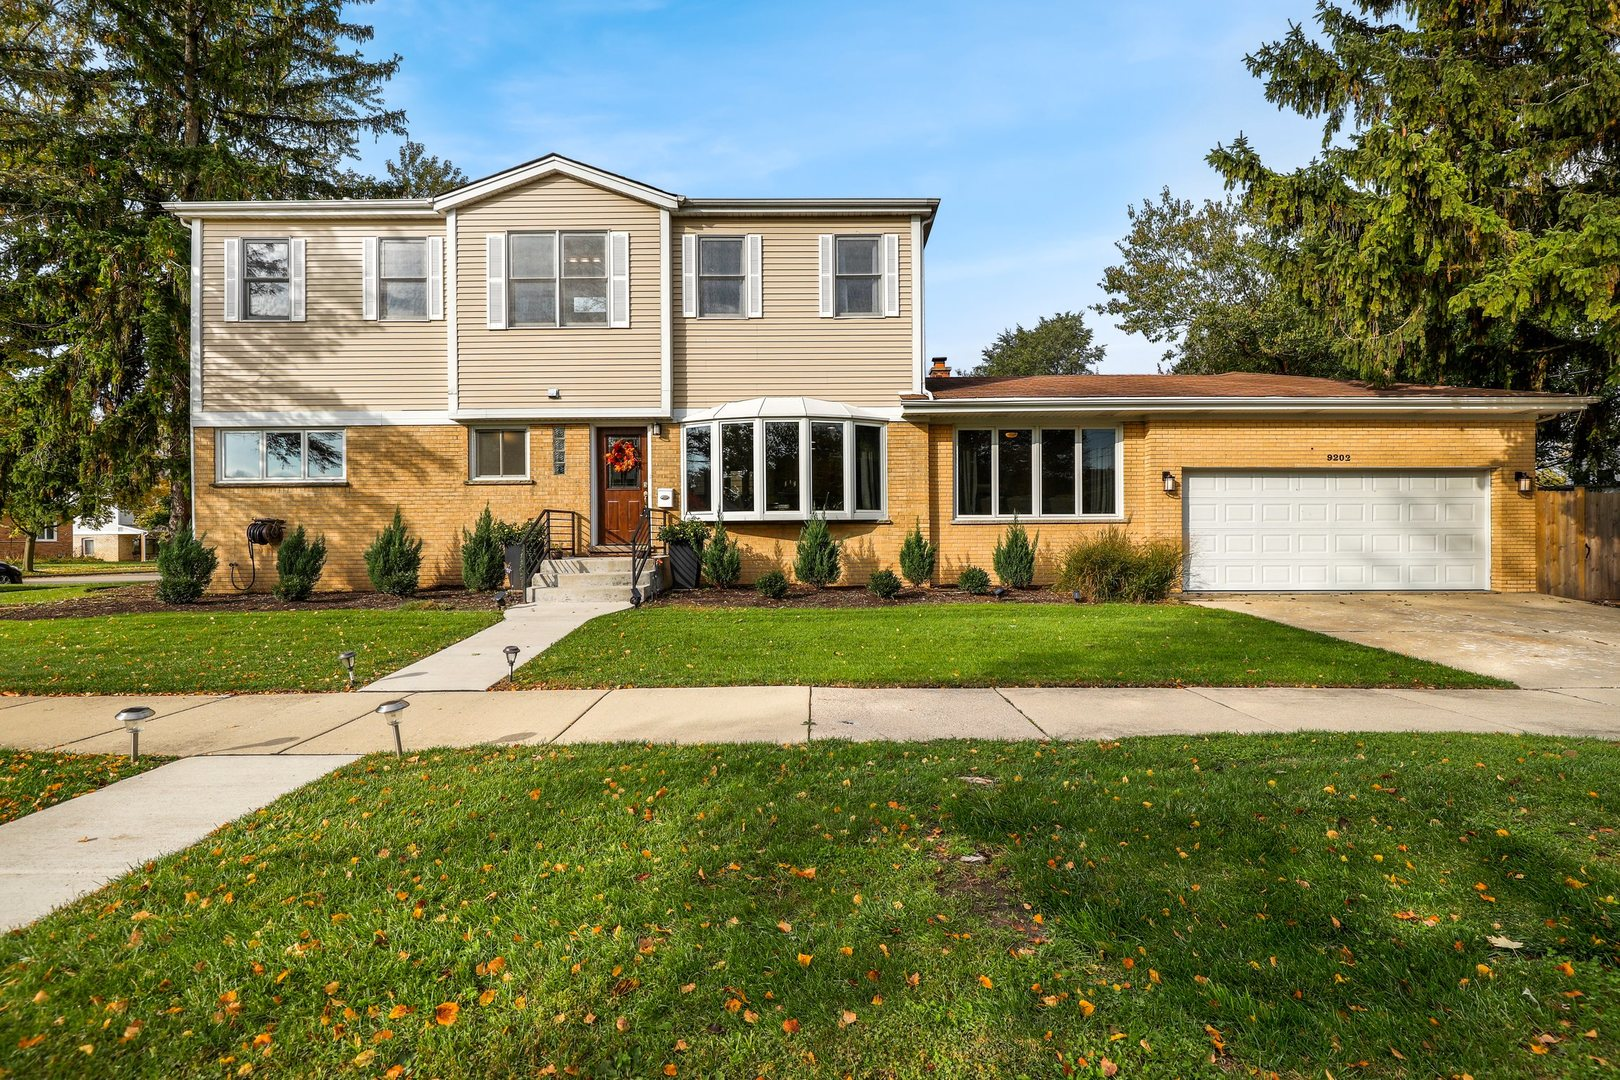 9202 Major Avenue, Morton Grove, Illinois